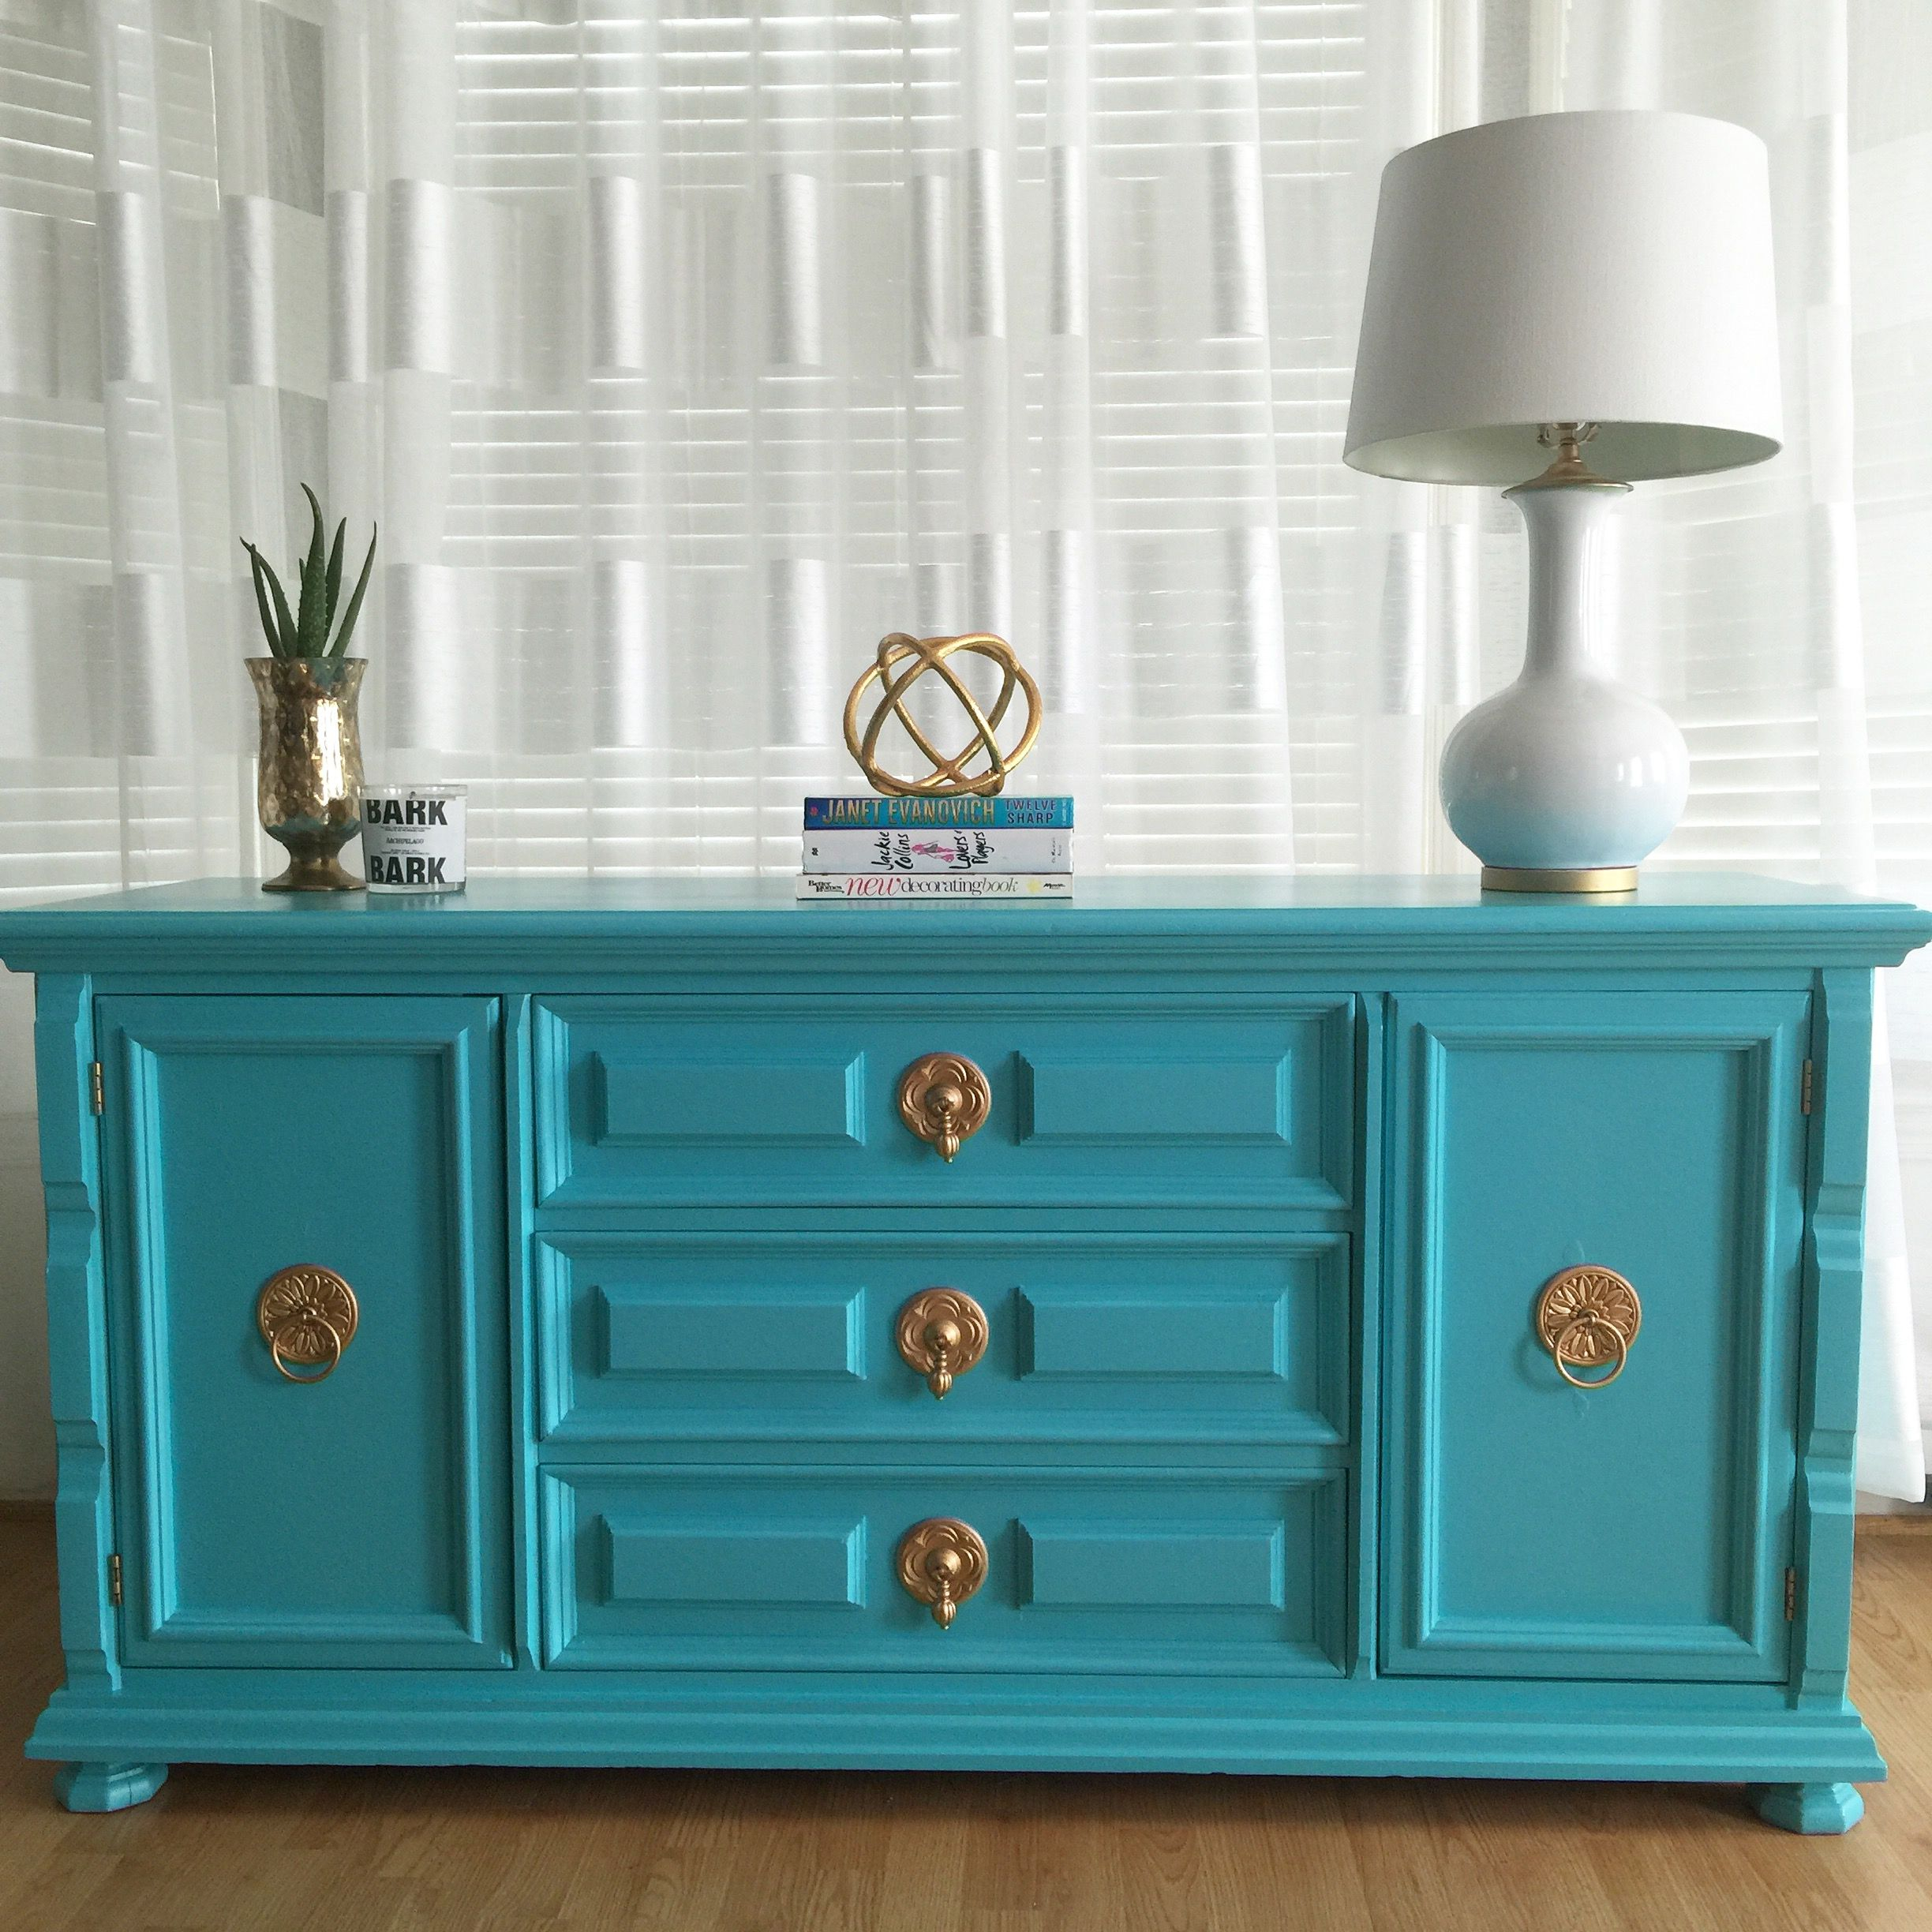 Hollywood Regency Credenza Sideboard Console Using High inside Deep Blue Fern Credenzas (Image 15 of 30)